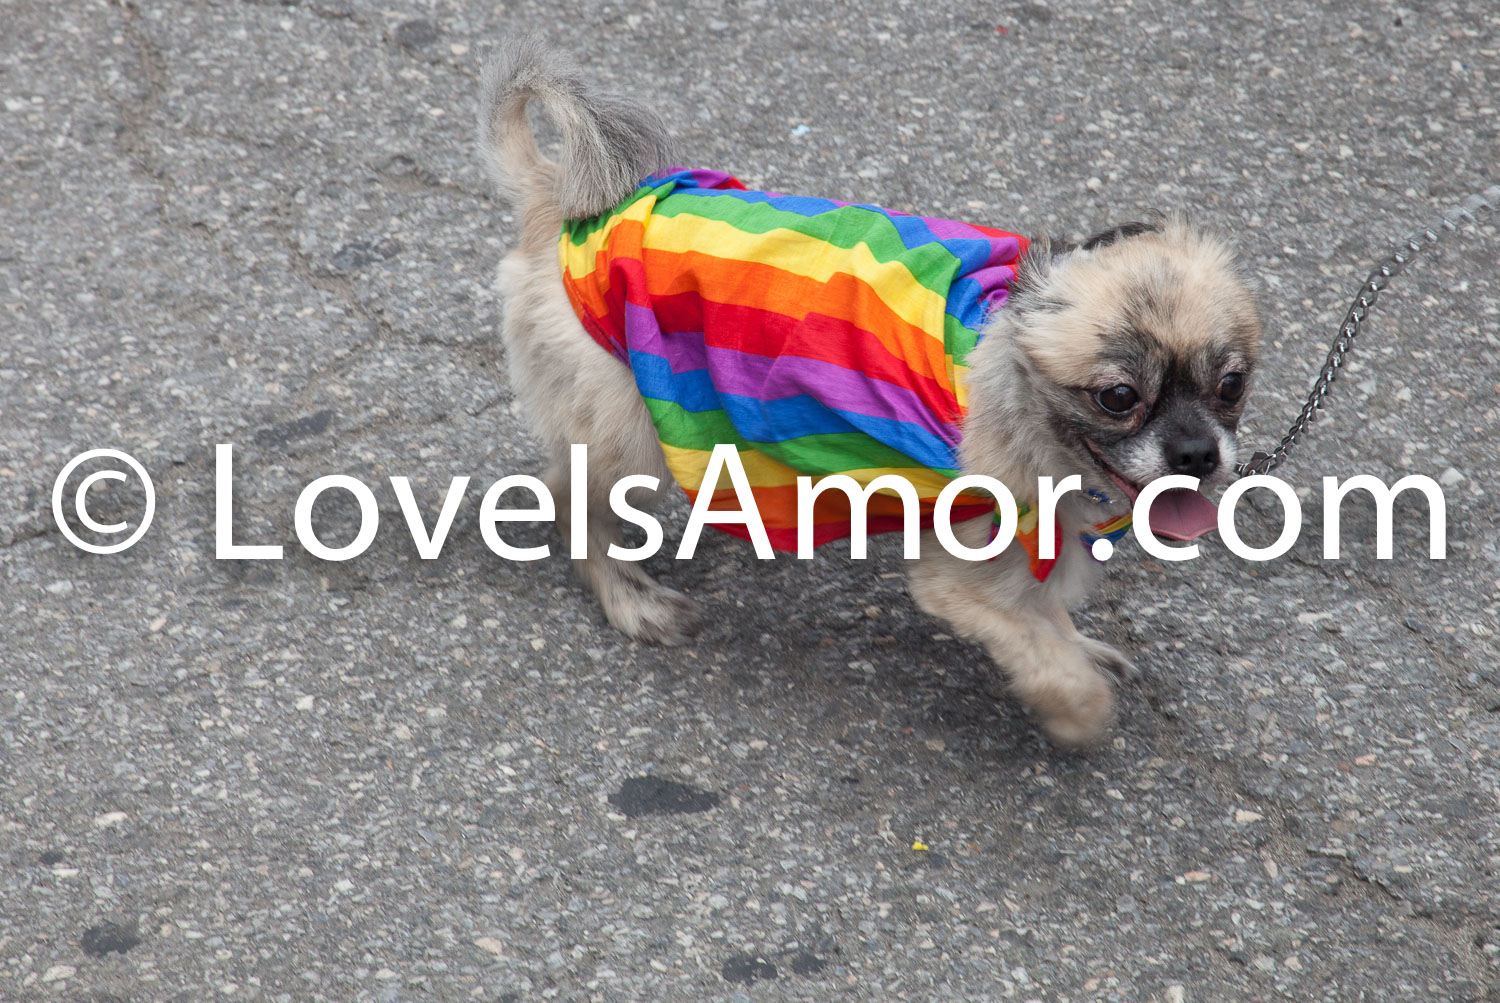 6/24/2018. New York City – The NYC Pride March celebrated 49 years. Dog wearing a rainbow (gay) t-shirt. Photo by Javier Soriano/LoveIsAmor.com